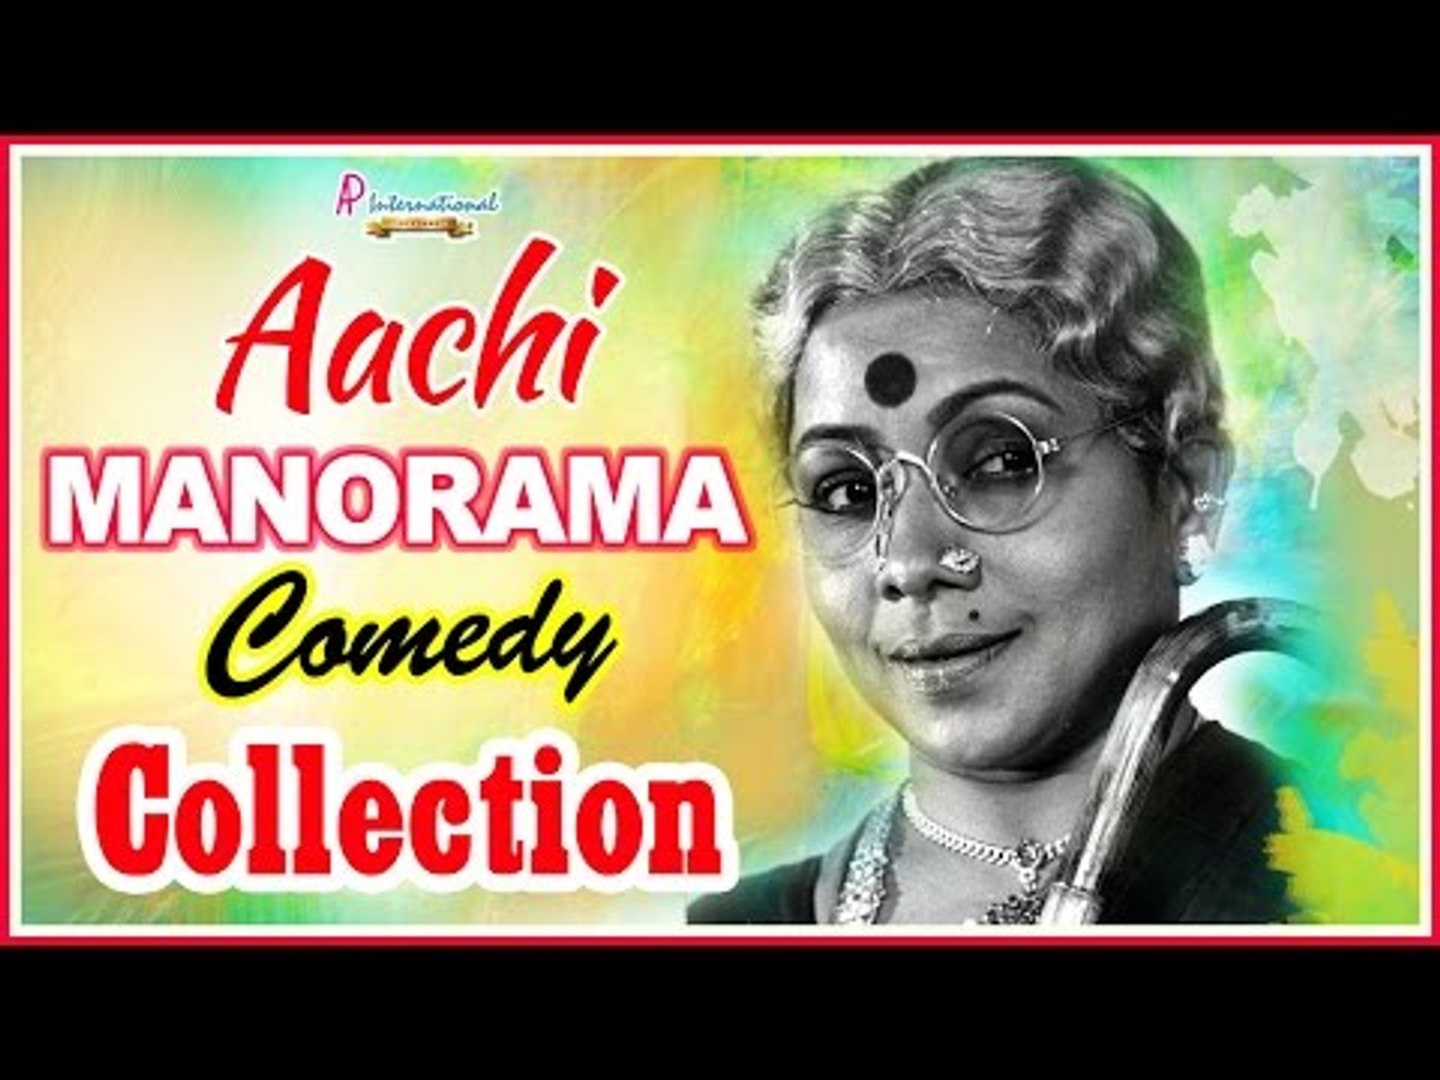 Manorama Comedy Collection   Tamil Comedy Scenes   Manorama Comedy Scenes